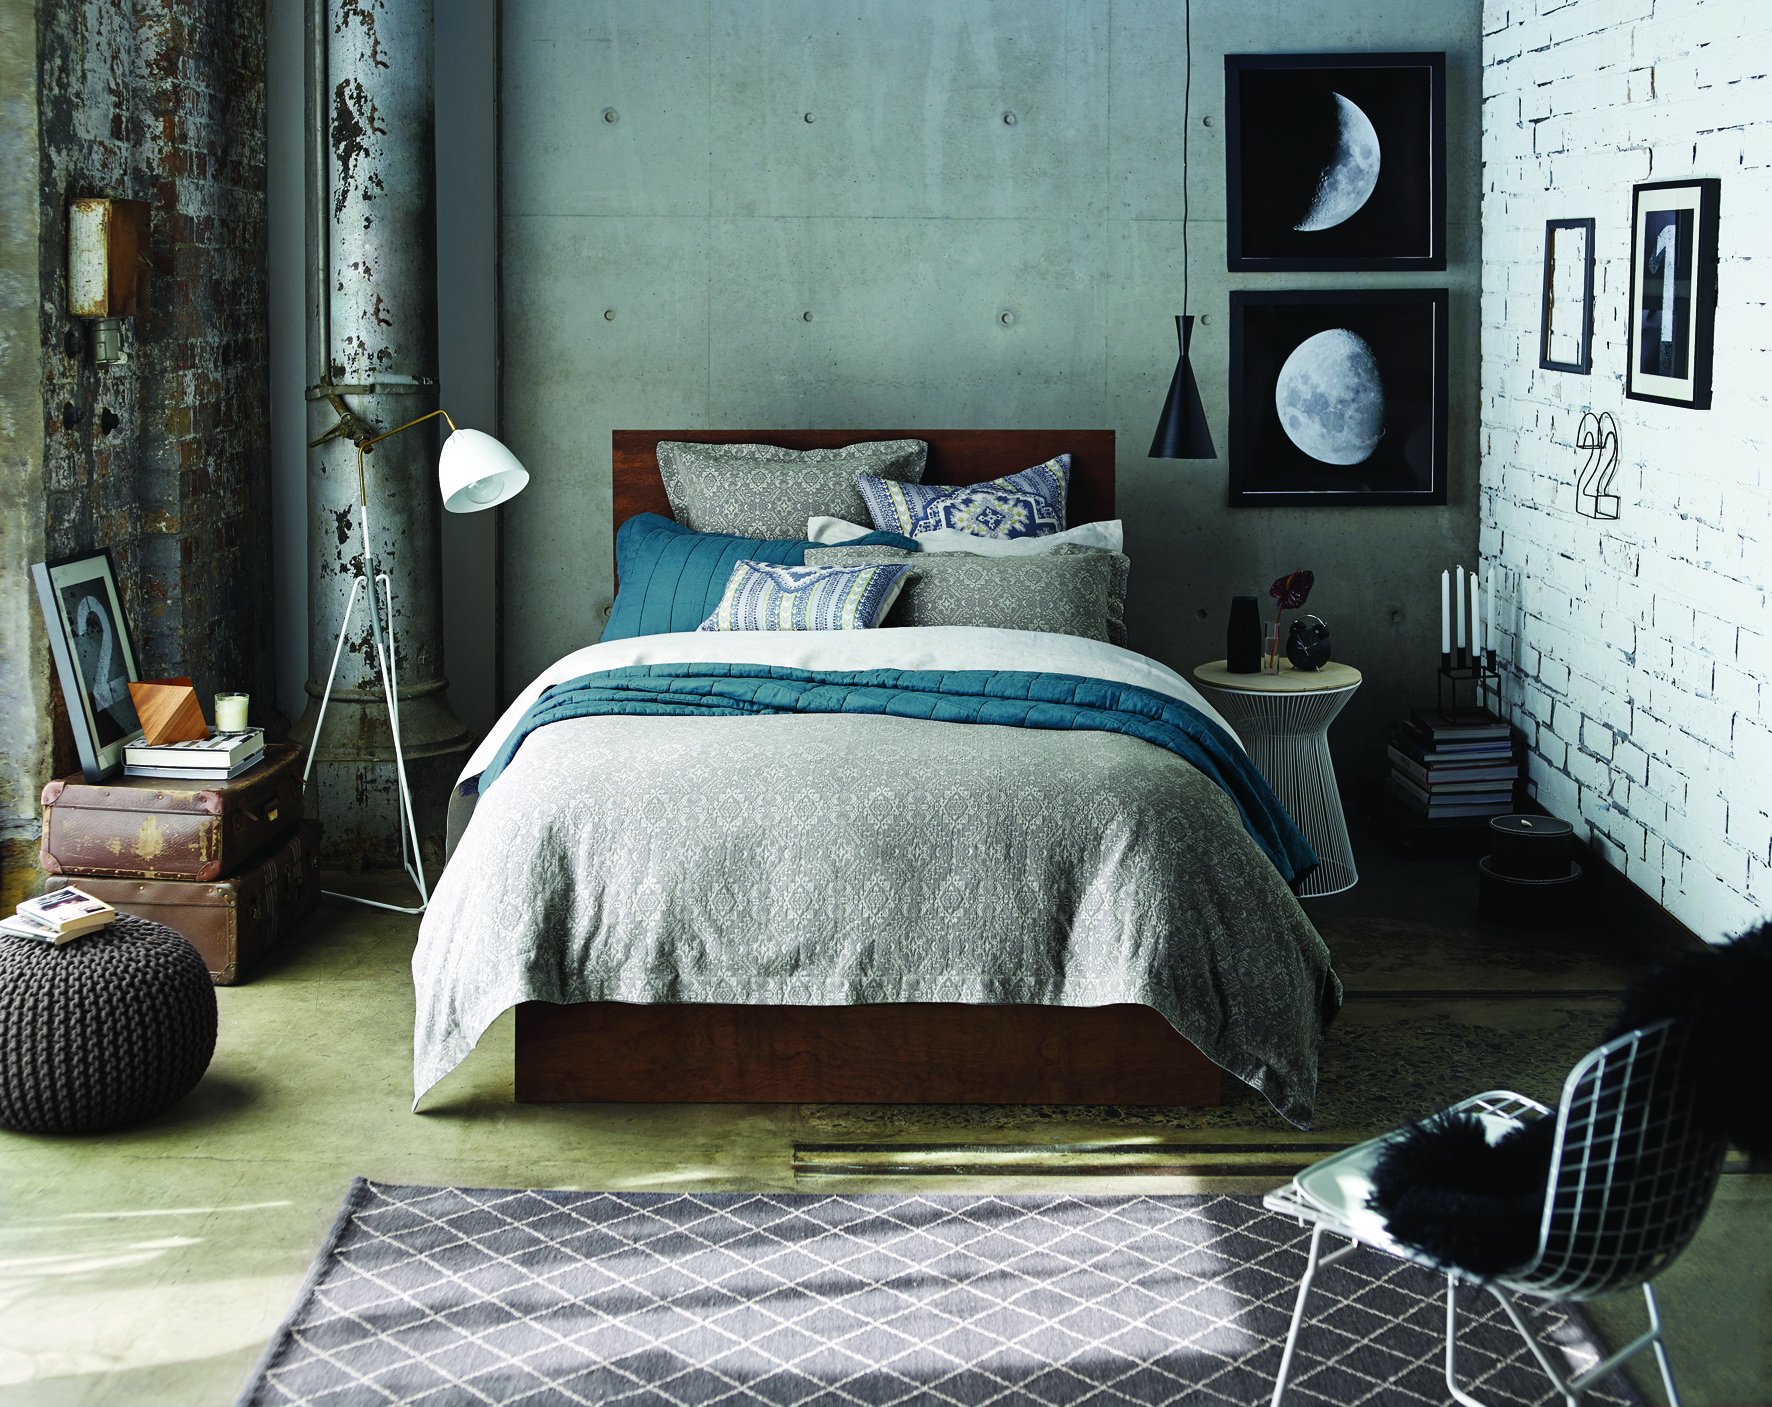 Super King Bedding Upgrade the comfort and style of your bedroom with new super king bedding and bed linens. Choose from down comforters, down pillows, thread count sheets, fleece blankets, sheet sets, comforters, and goose down to help you get a better nights sleep.